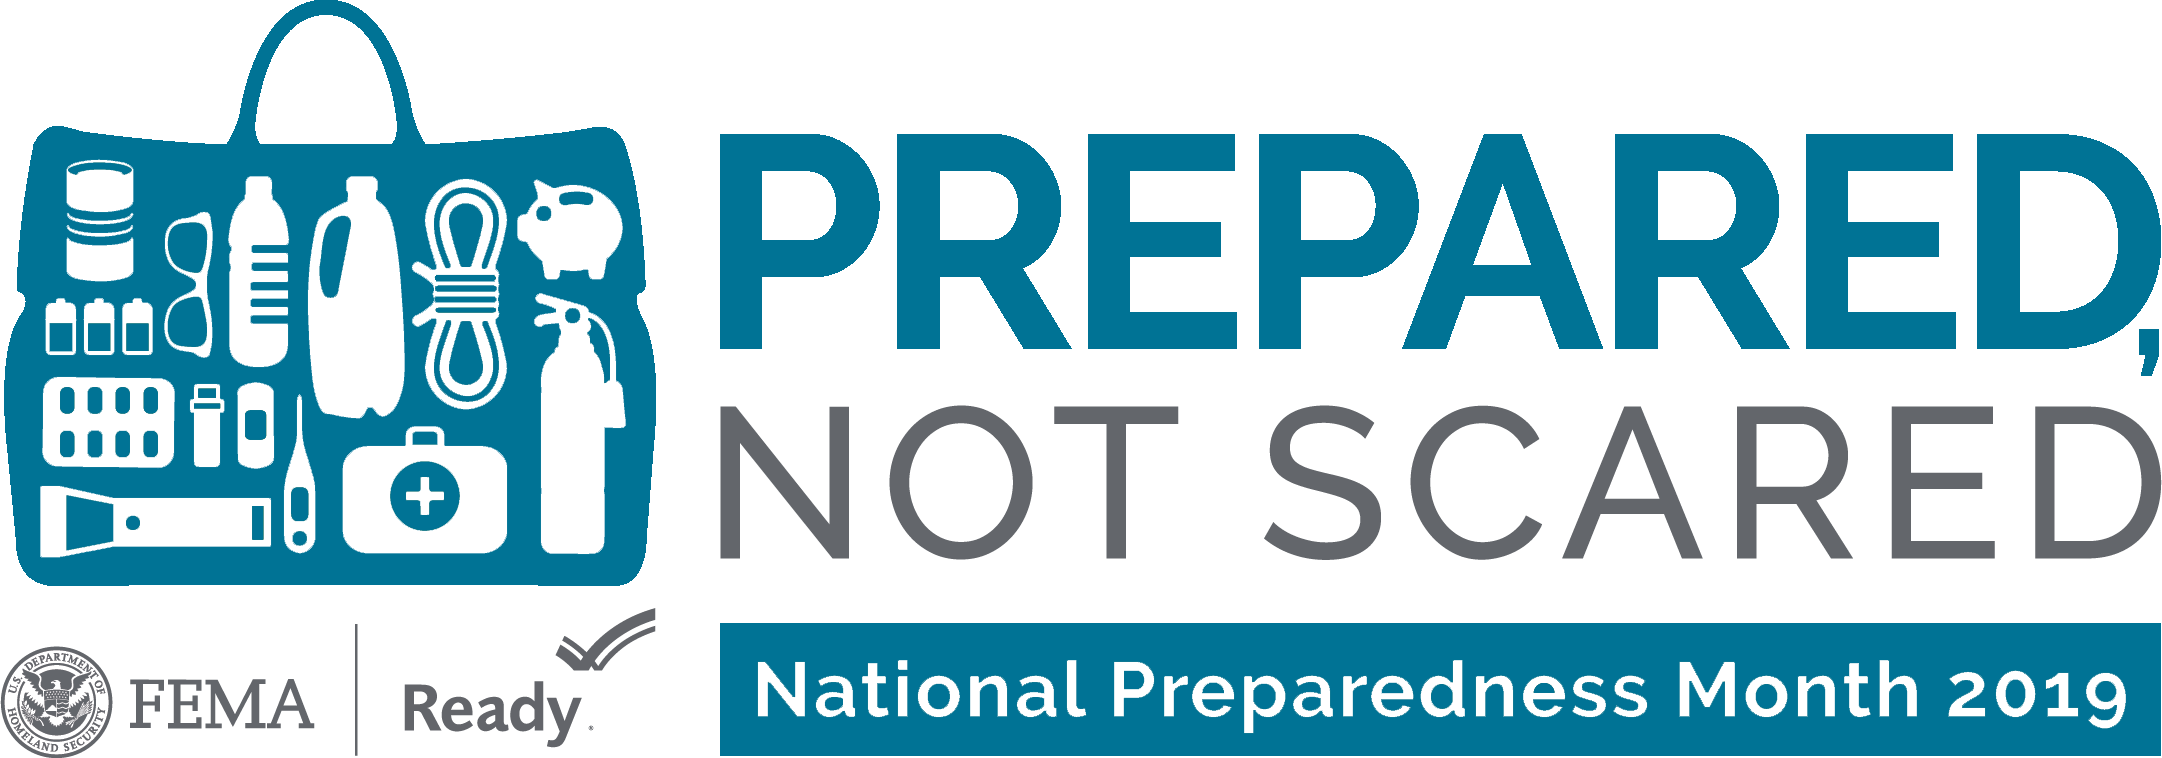 Prepared not scared event banner